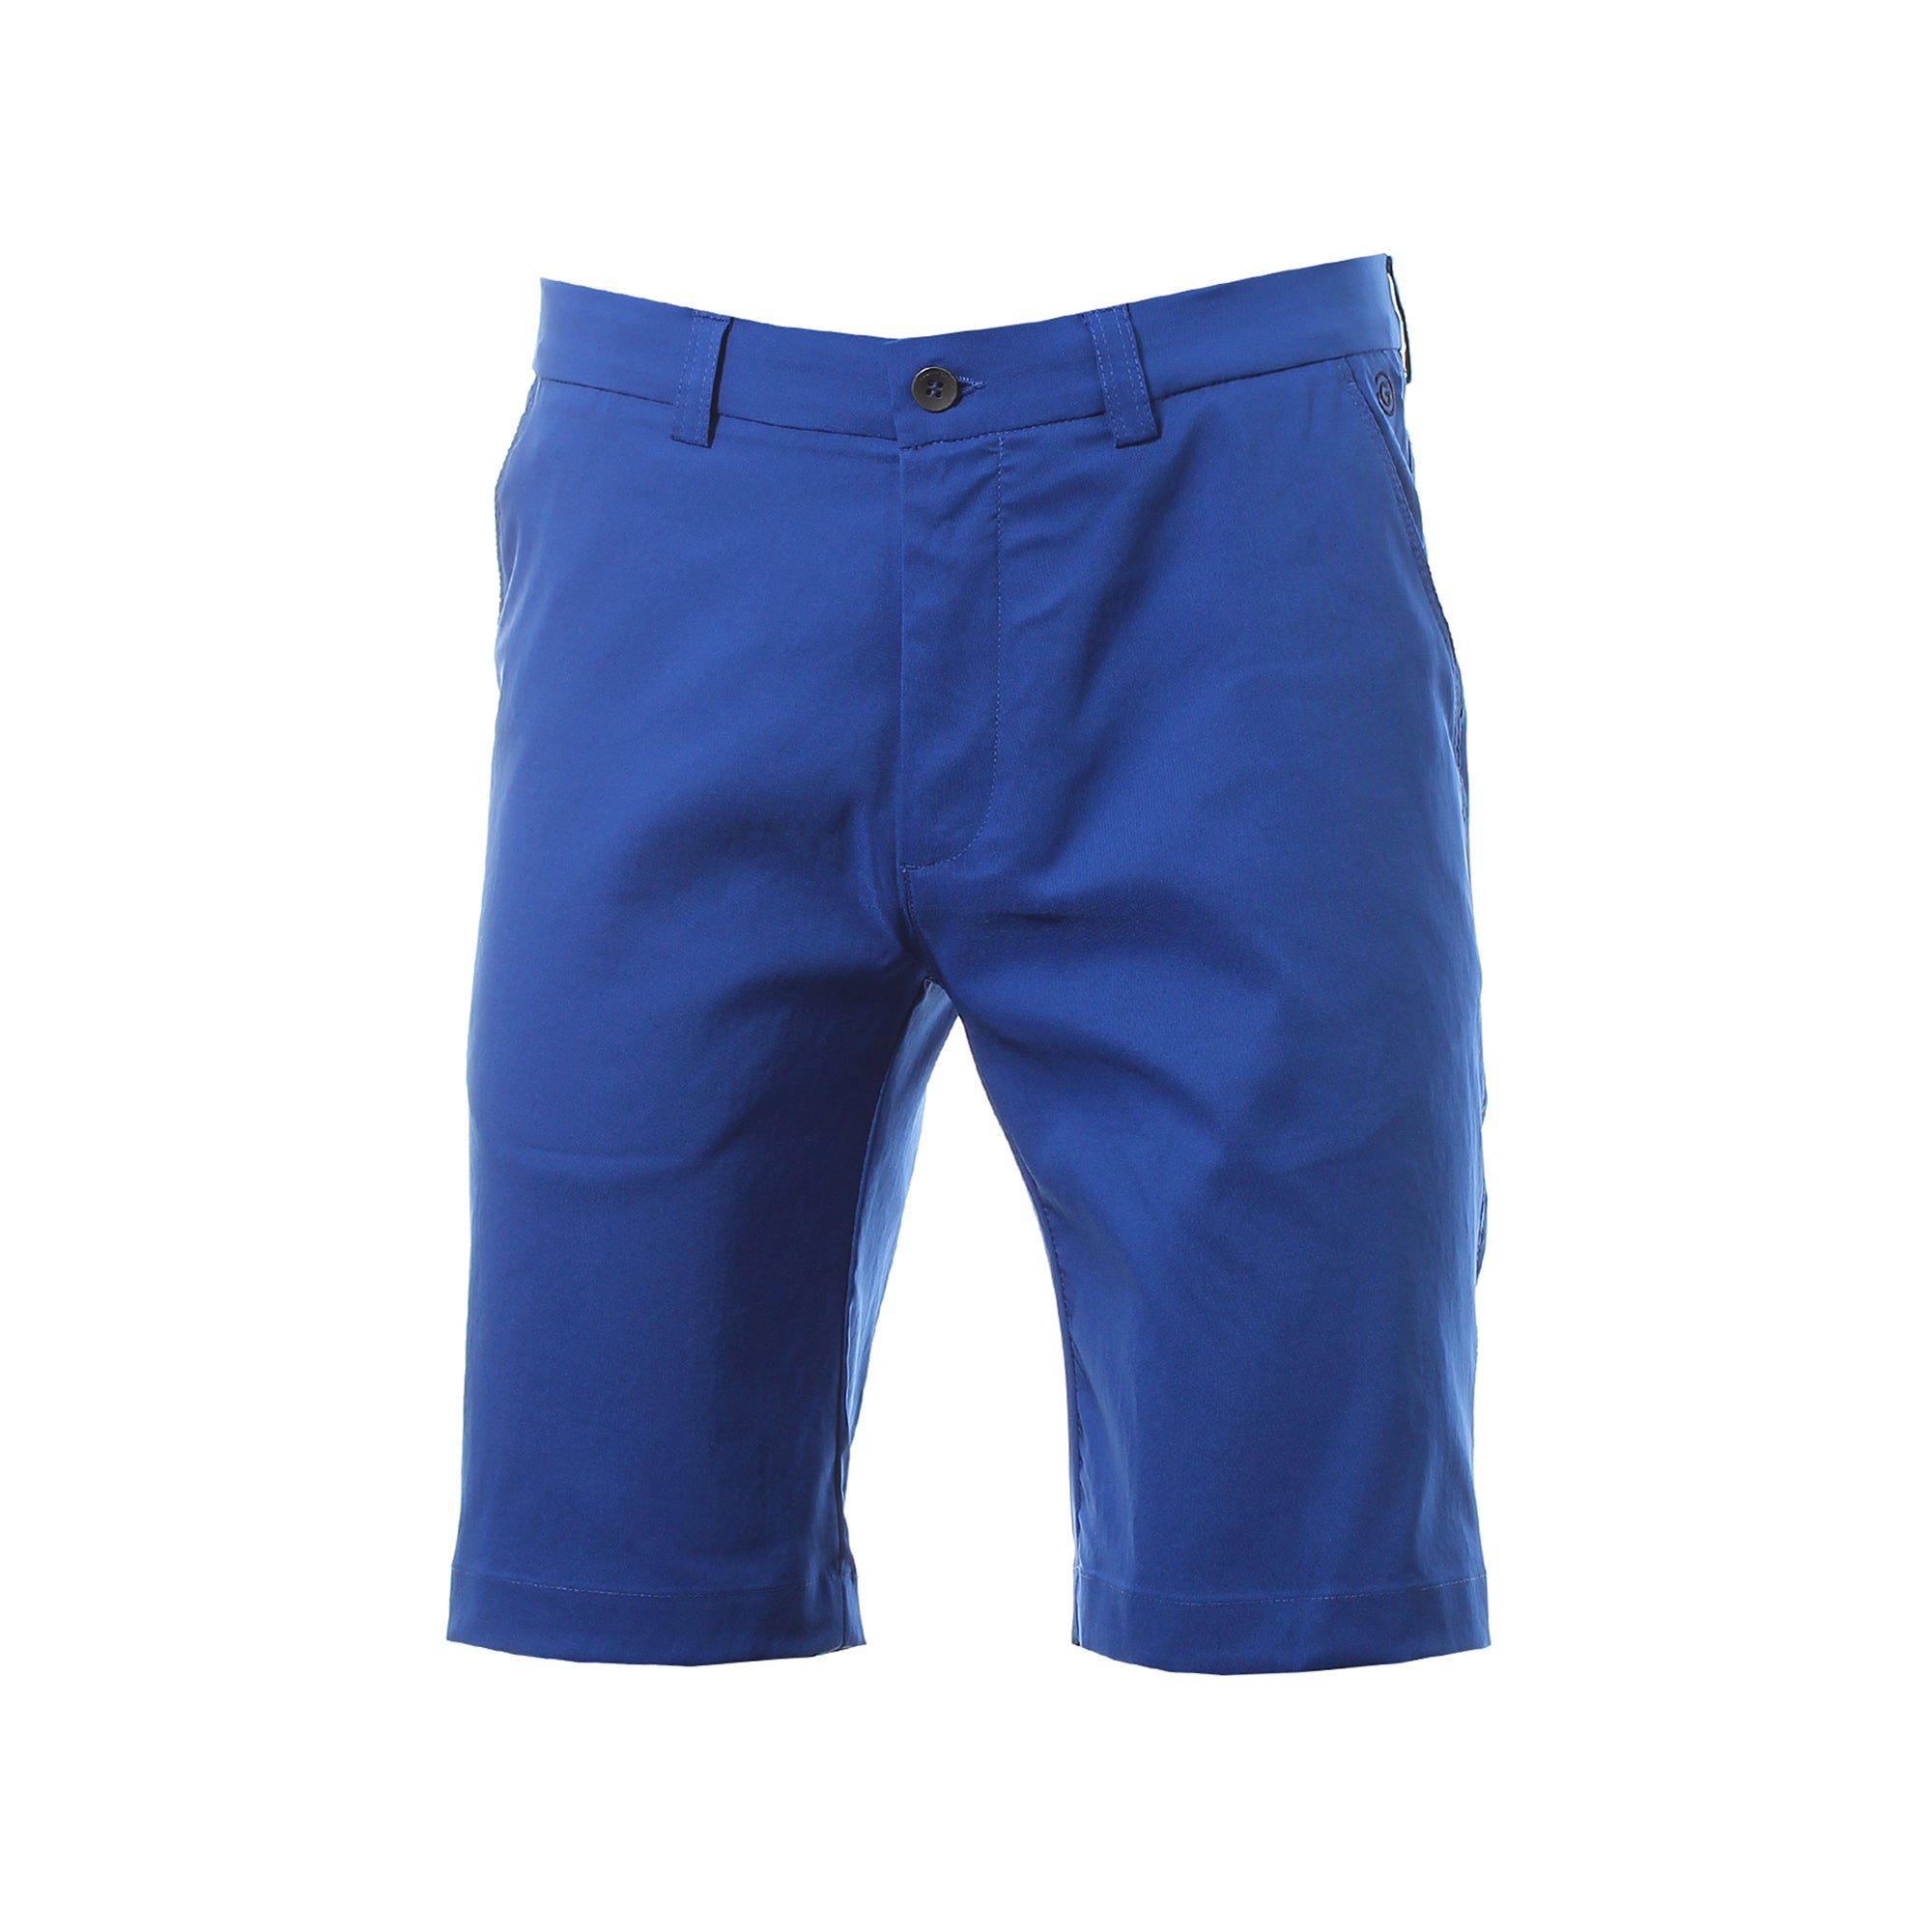 Galvin Green Paolo Ventil8+ Golf Shorts